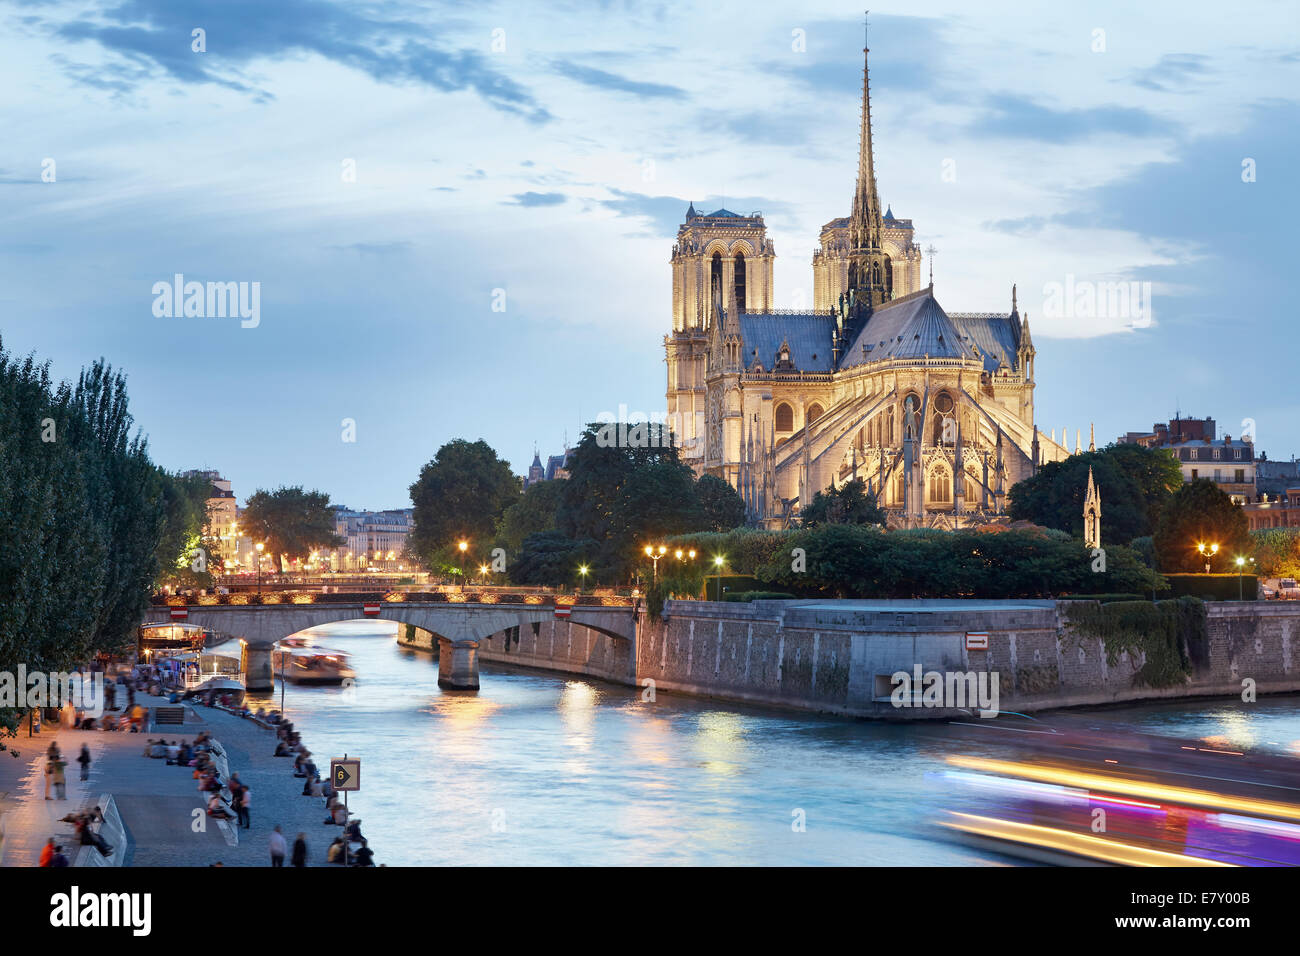 The Cathedral of Notre Dame de Paris in the evening, France - Stock Image